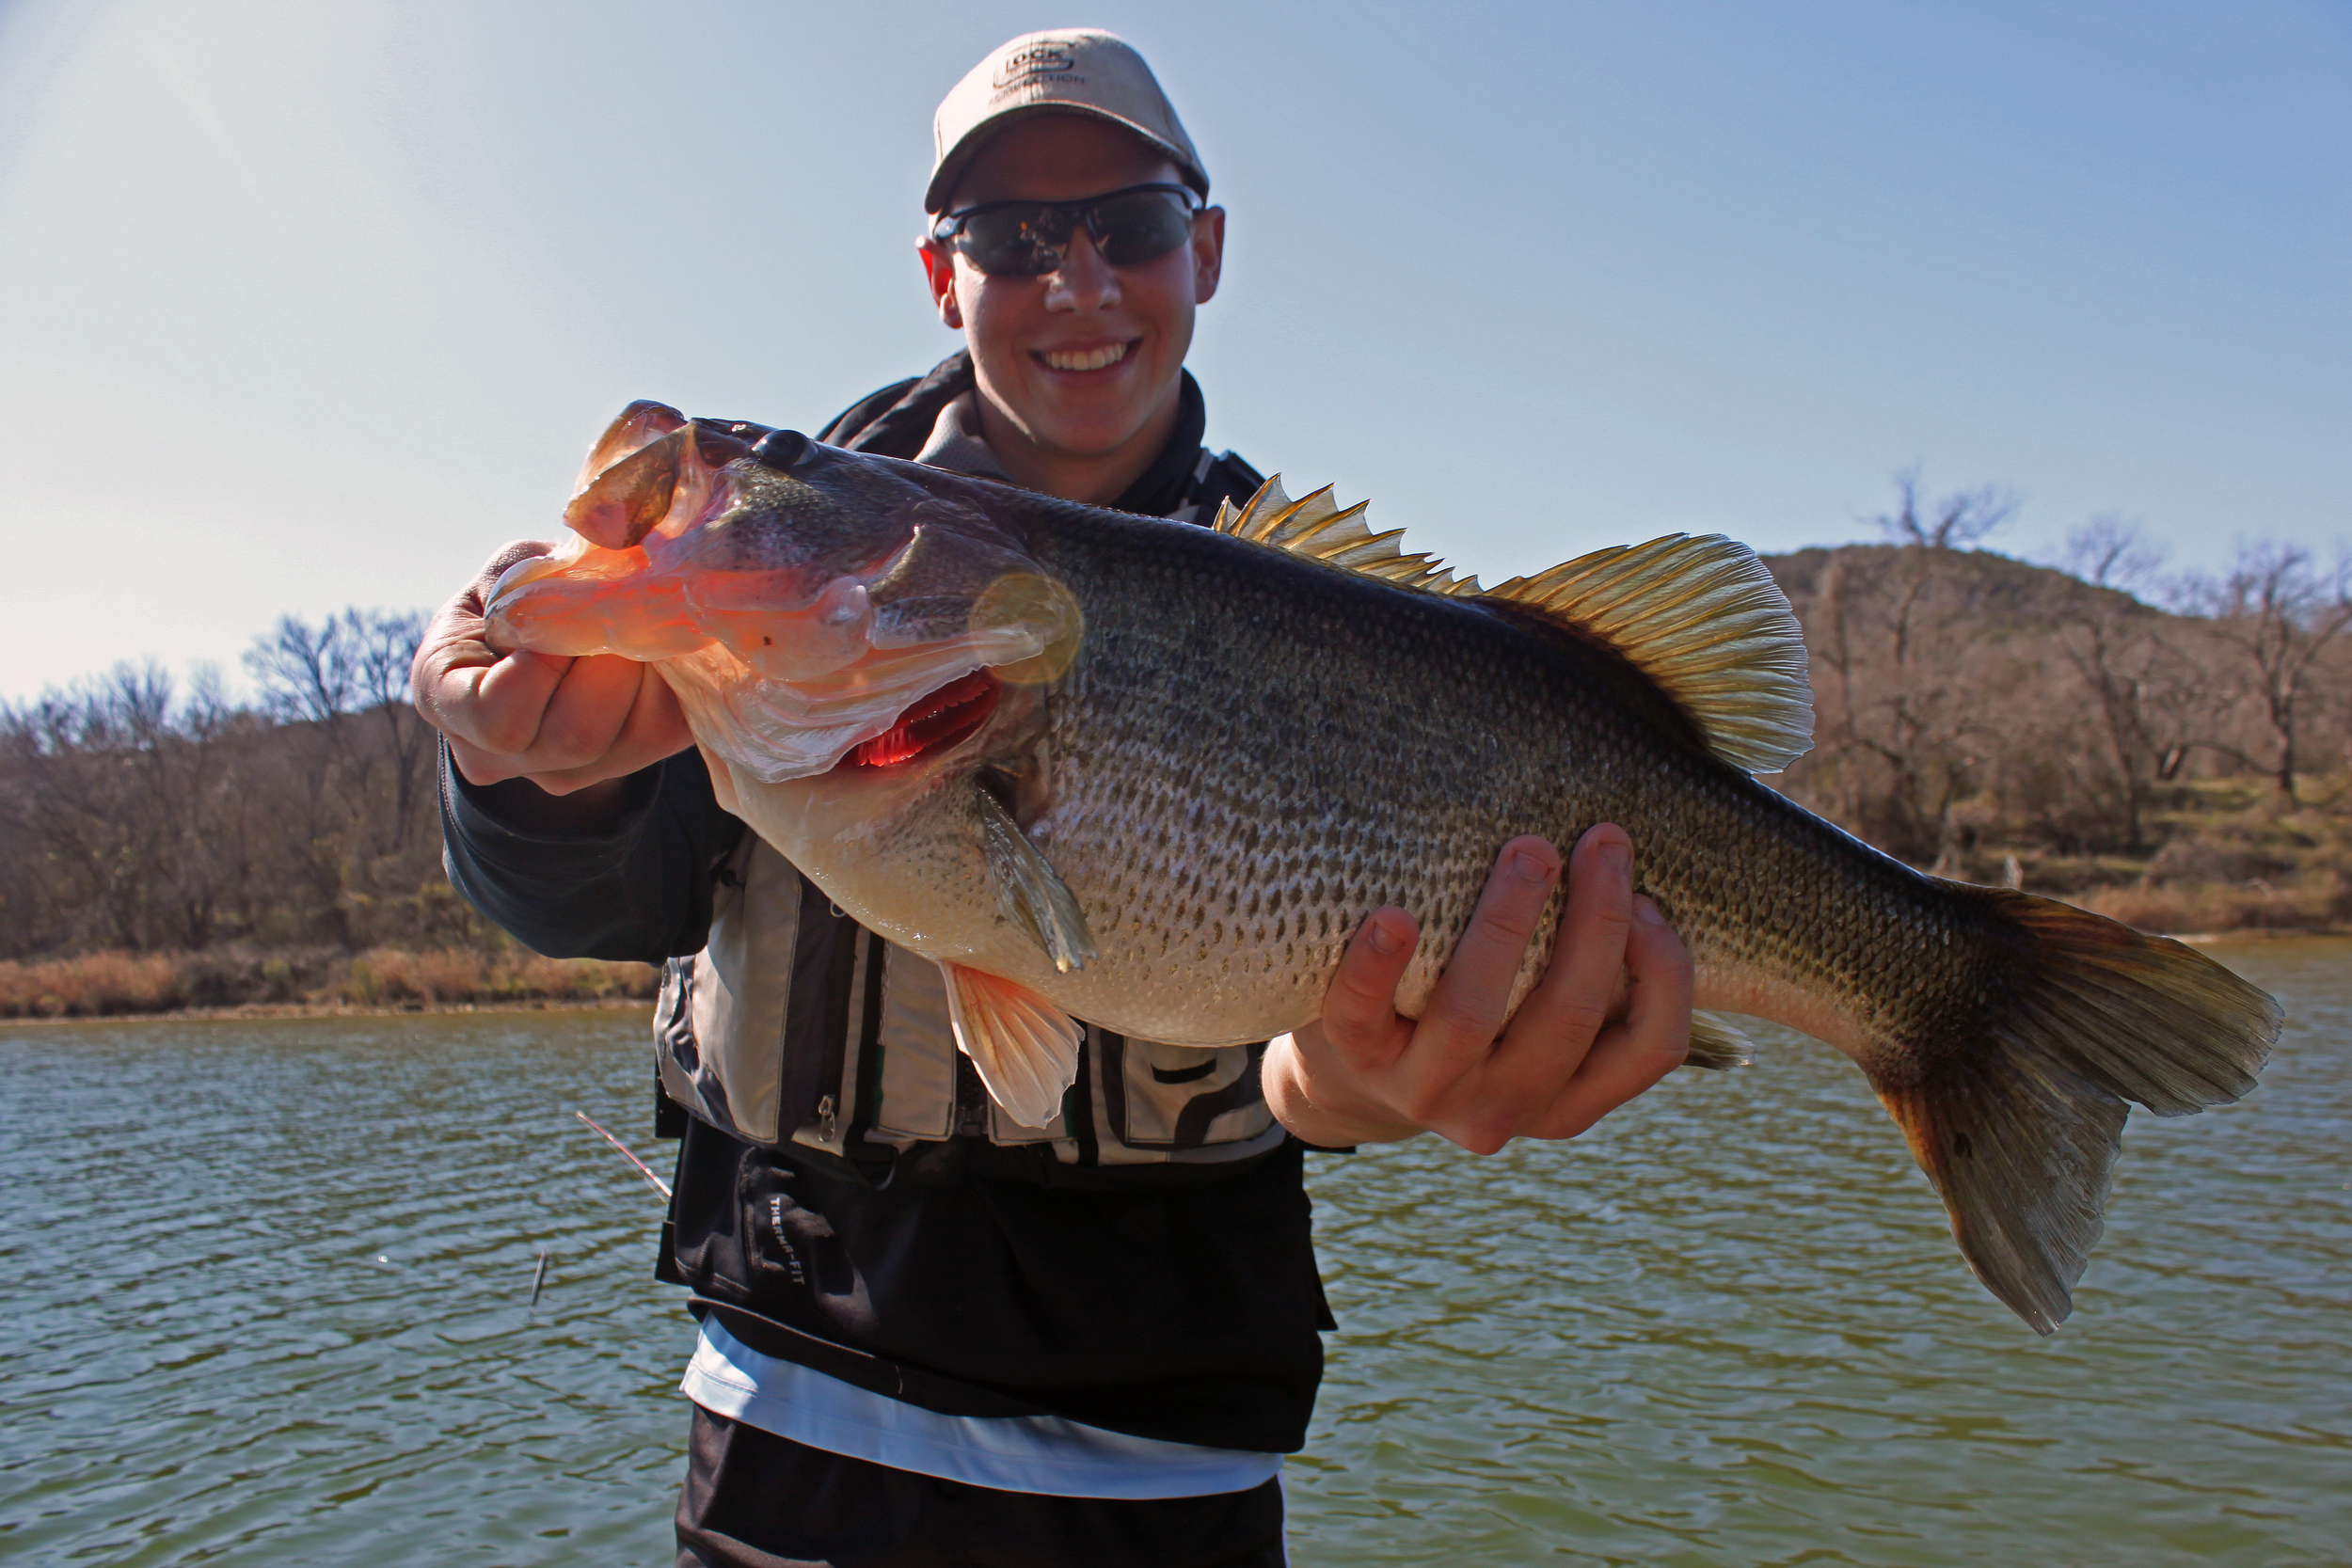 Huge Twelve Pound Bass Caught on the Brazos River with a KVD Square Bill Crankbait